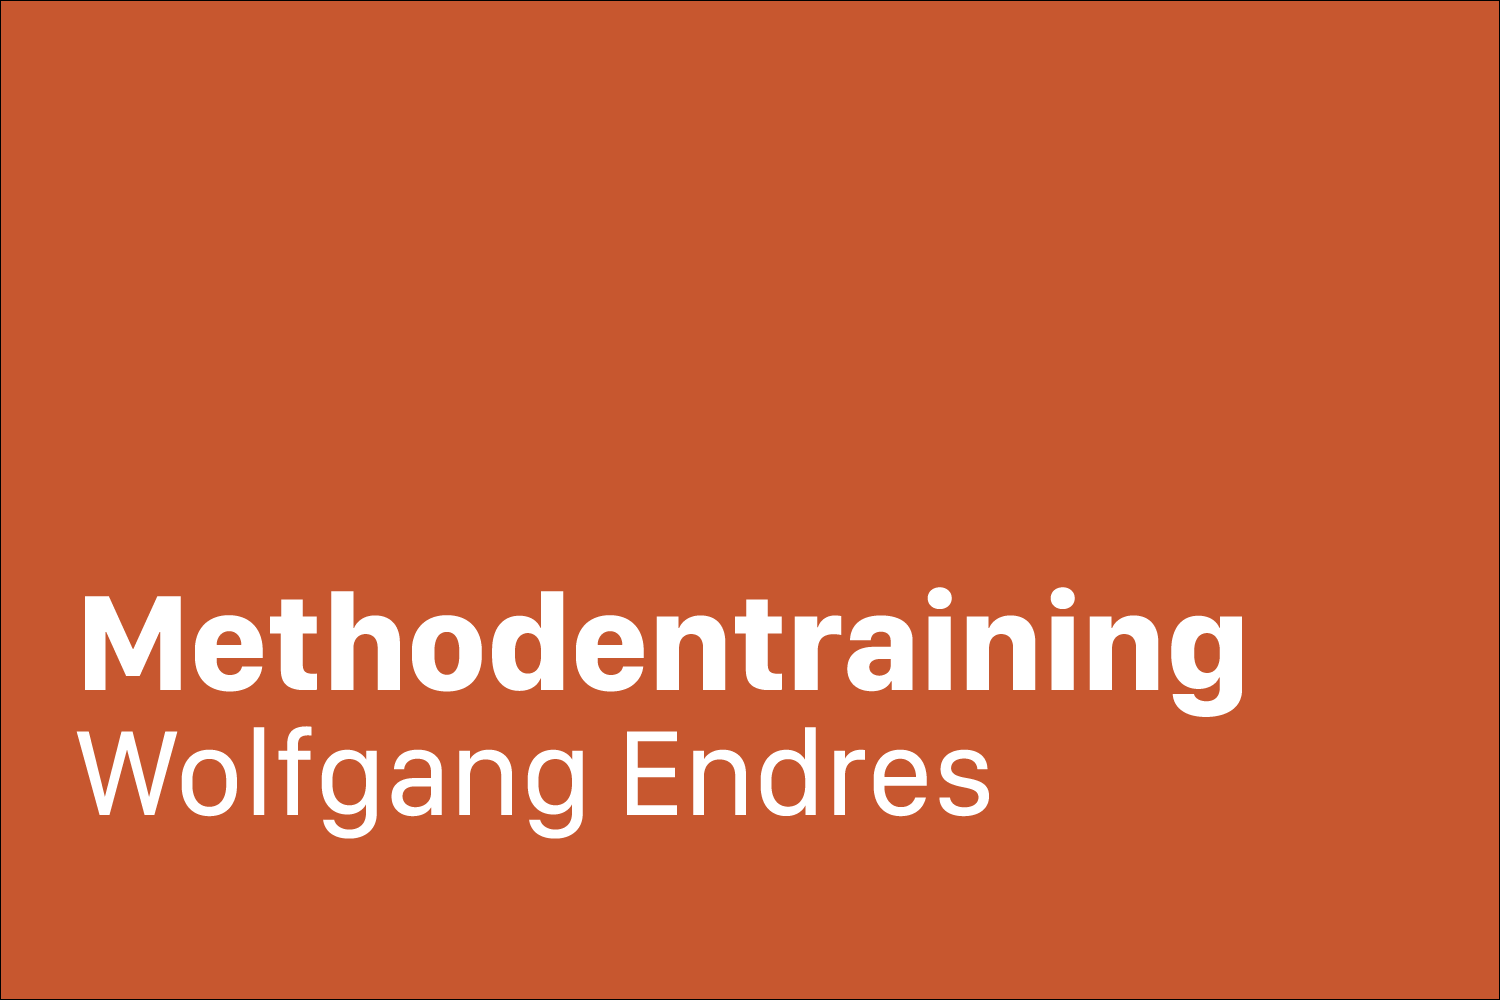 Methodentraining Wolfgang Endres 3_2